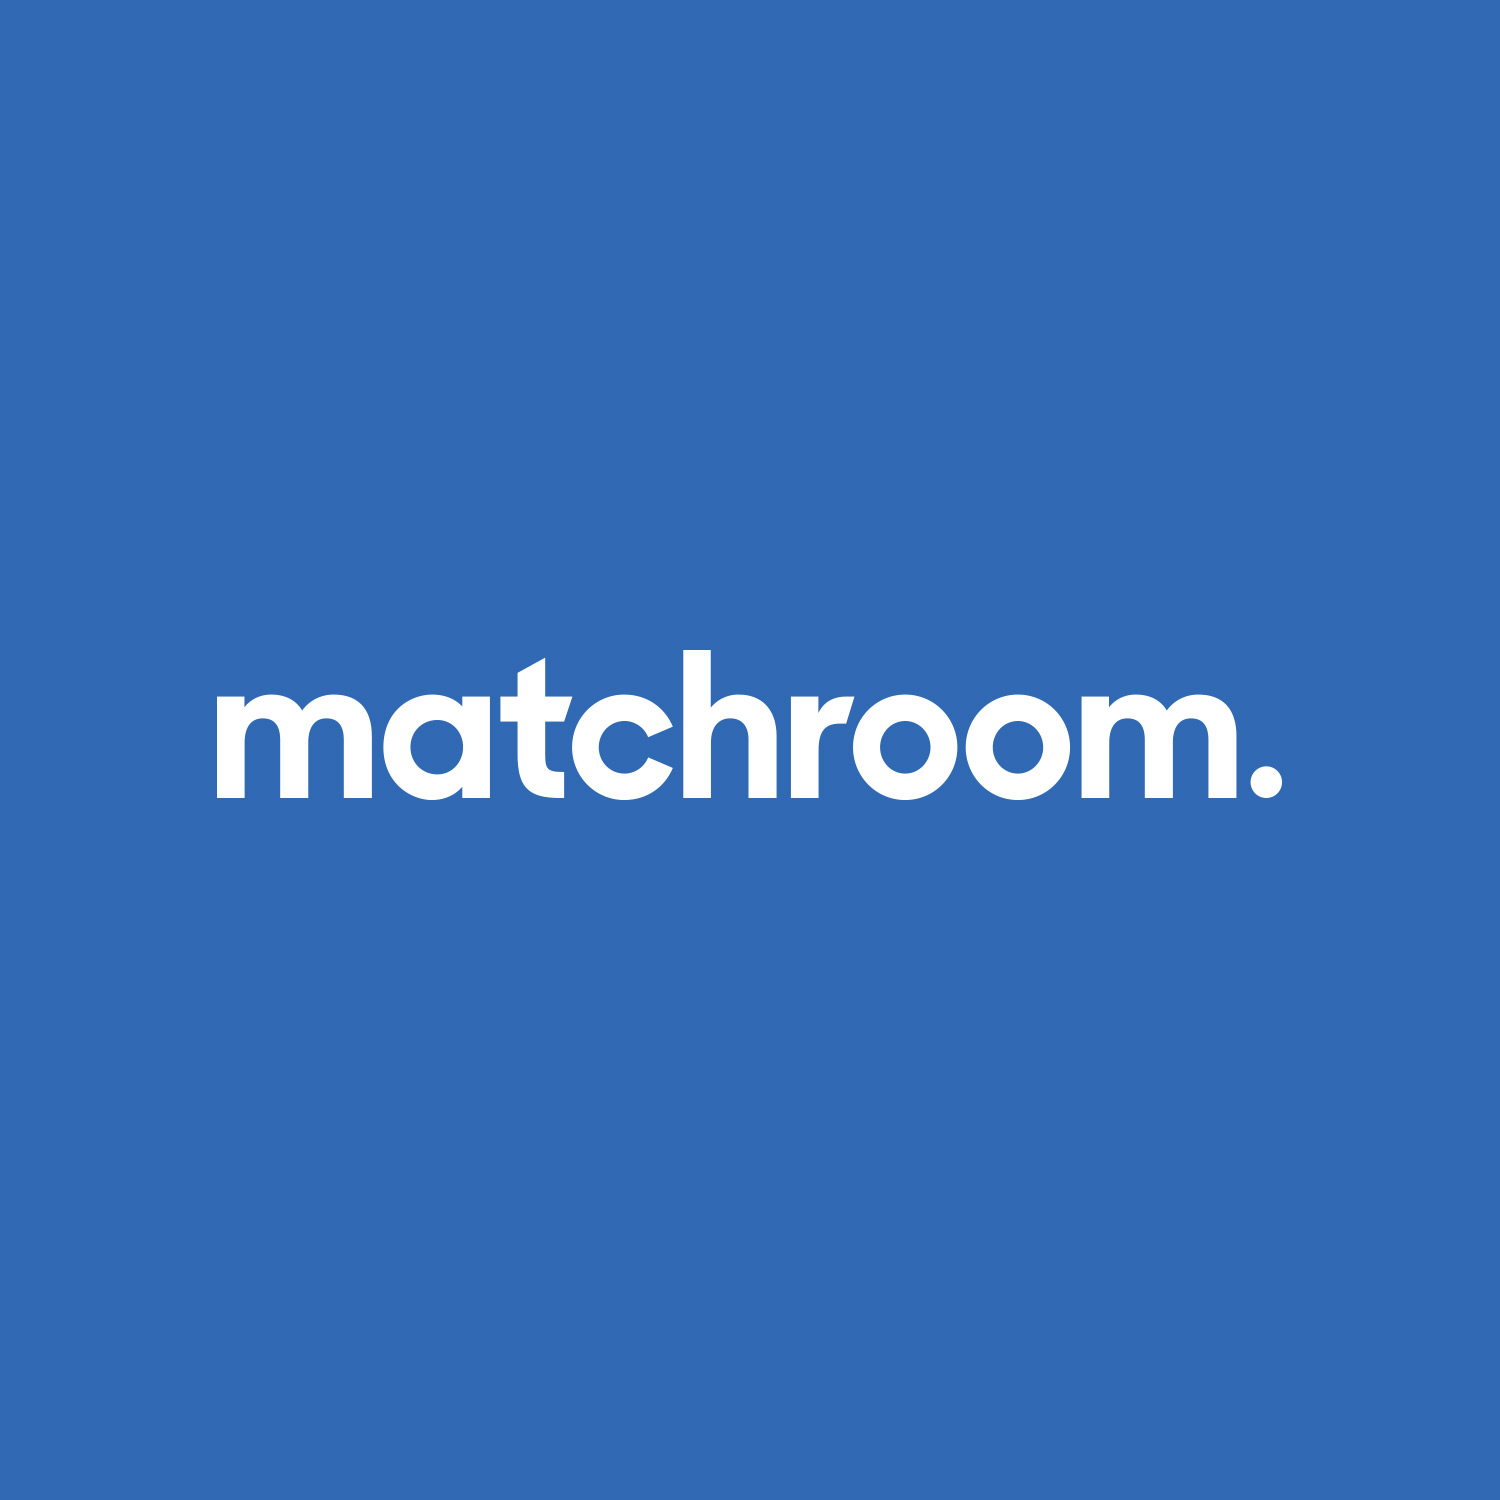 MATCHROOM MULTI SPORT BECOMES LATEST SUBSIDIARY OF MATCHROOM SPORT